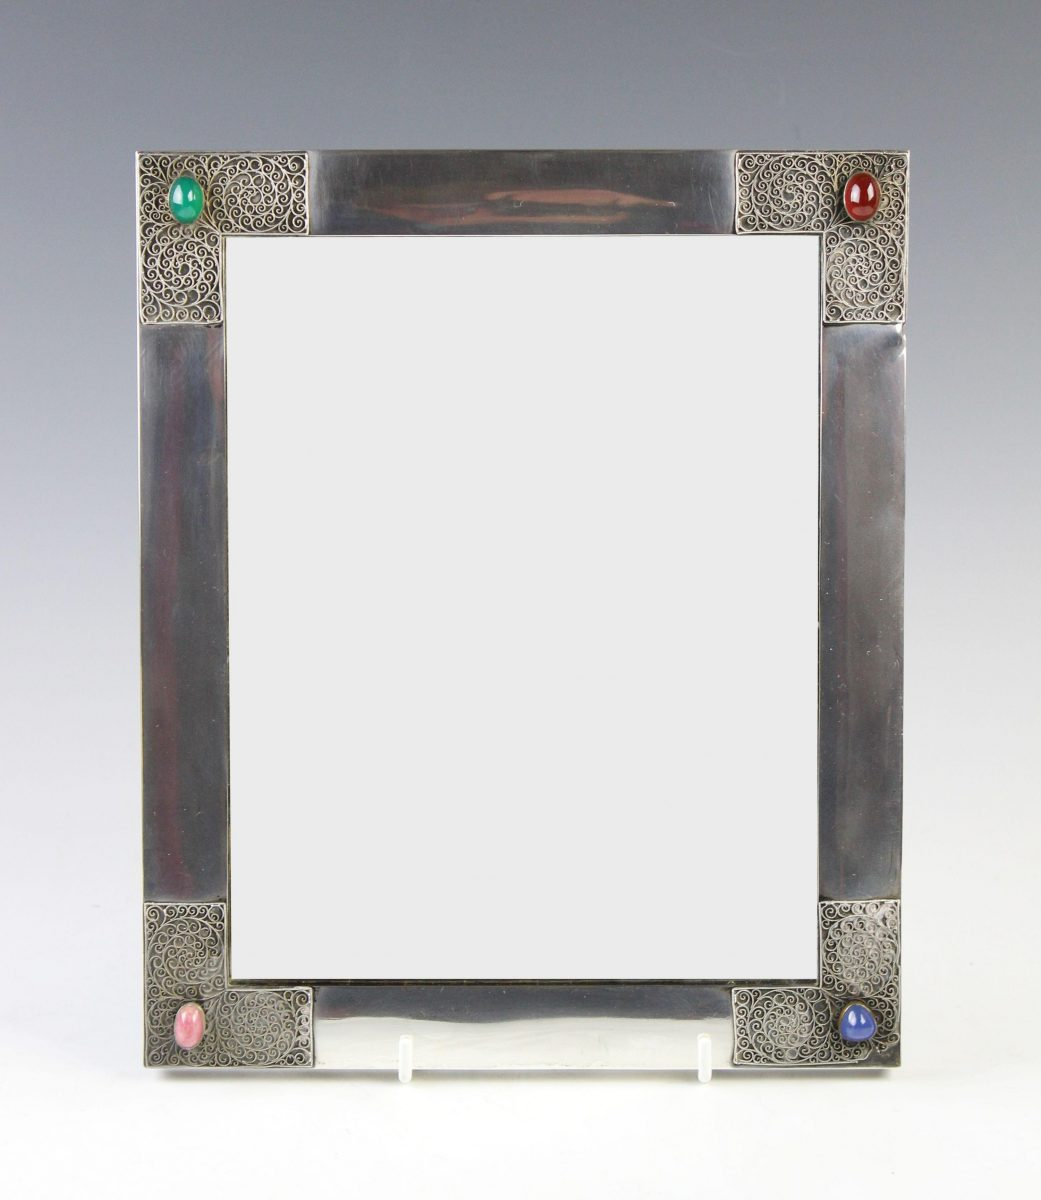 14. A Russian silver frame SOLD for £3,800 - March 2018